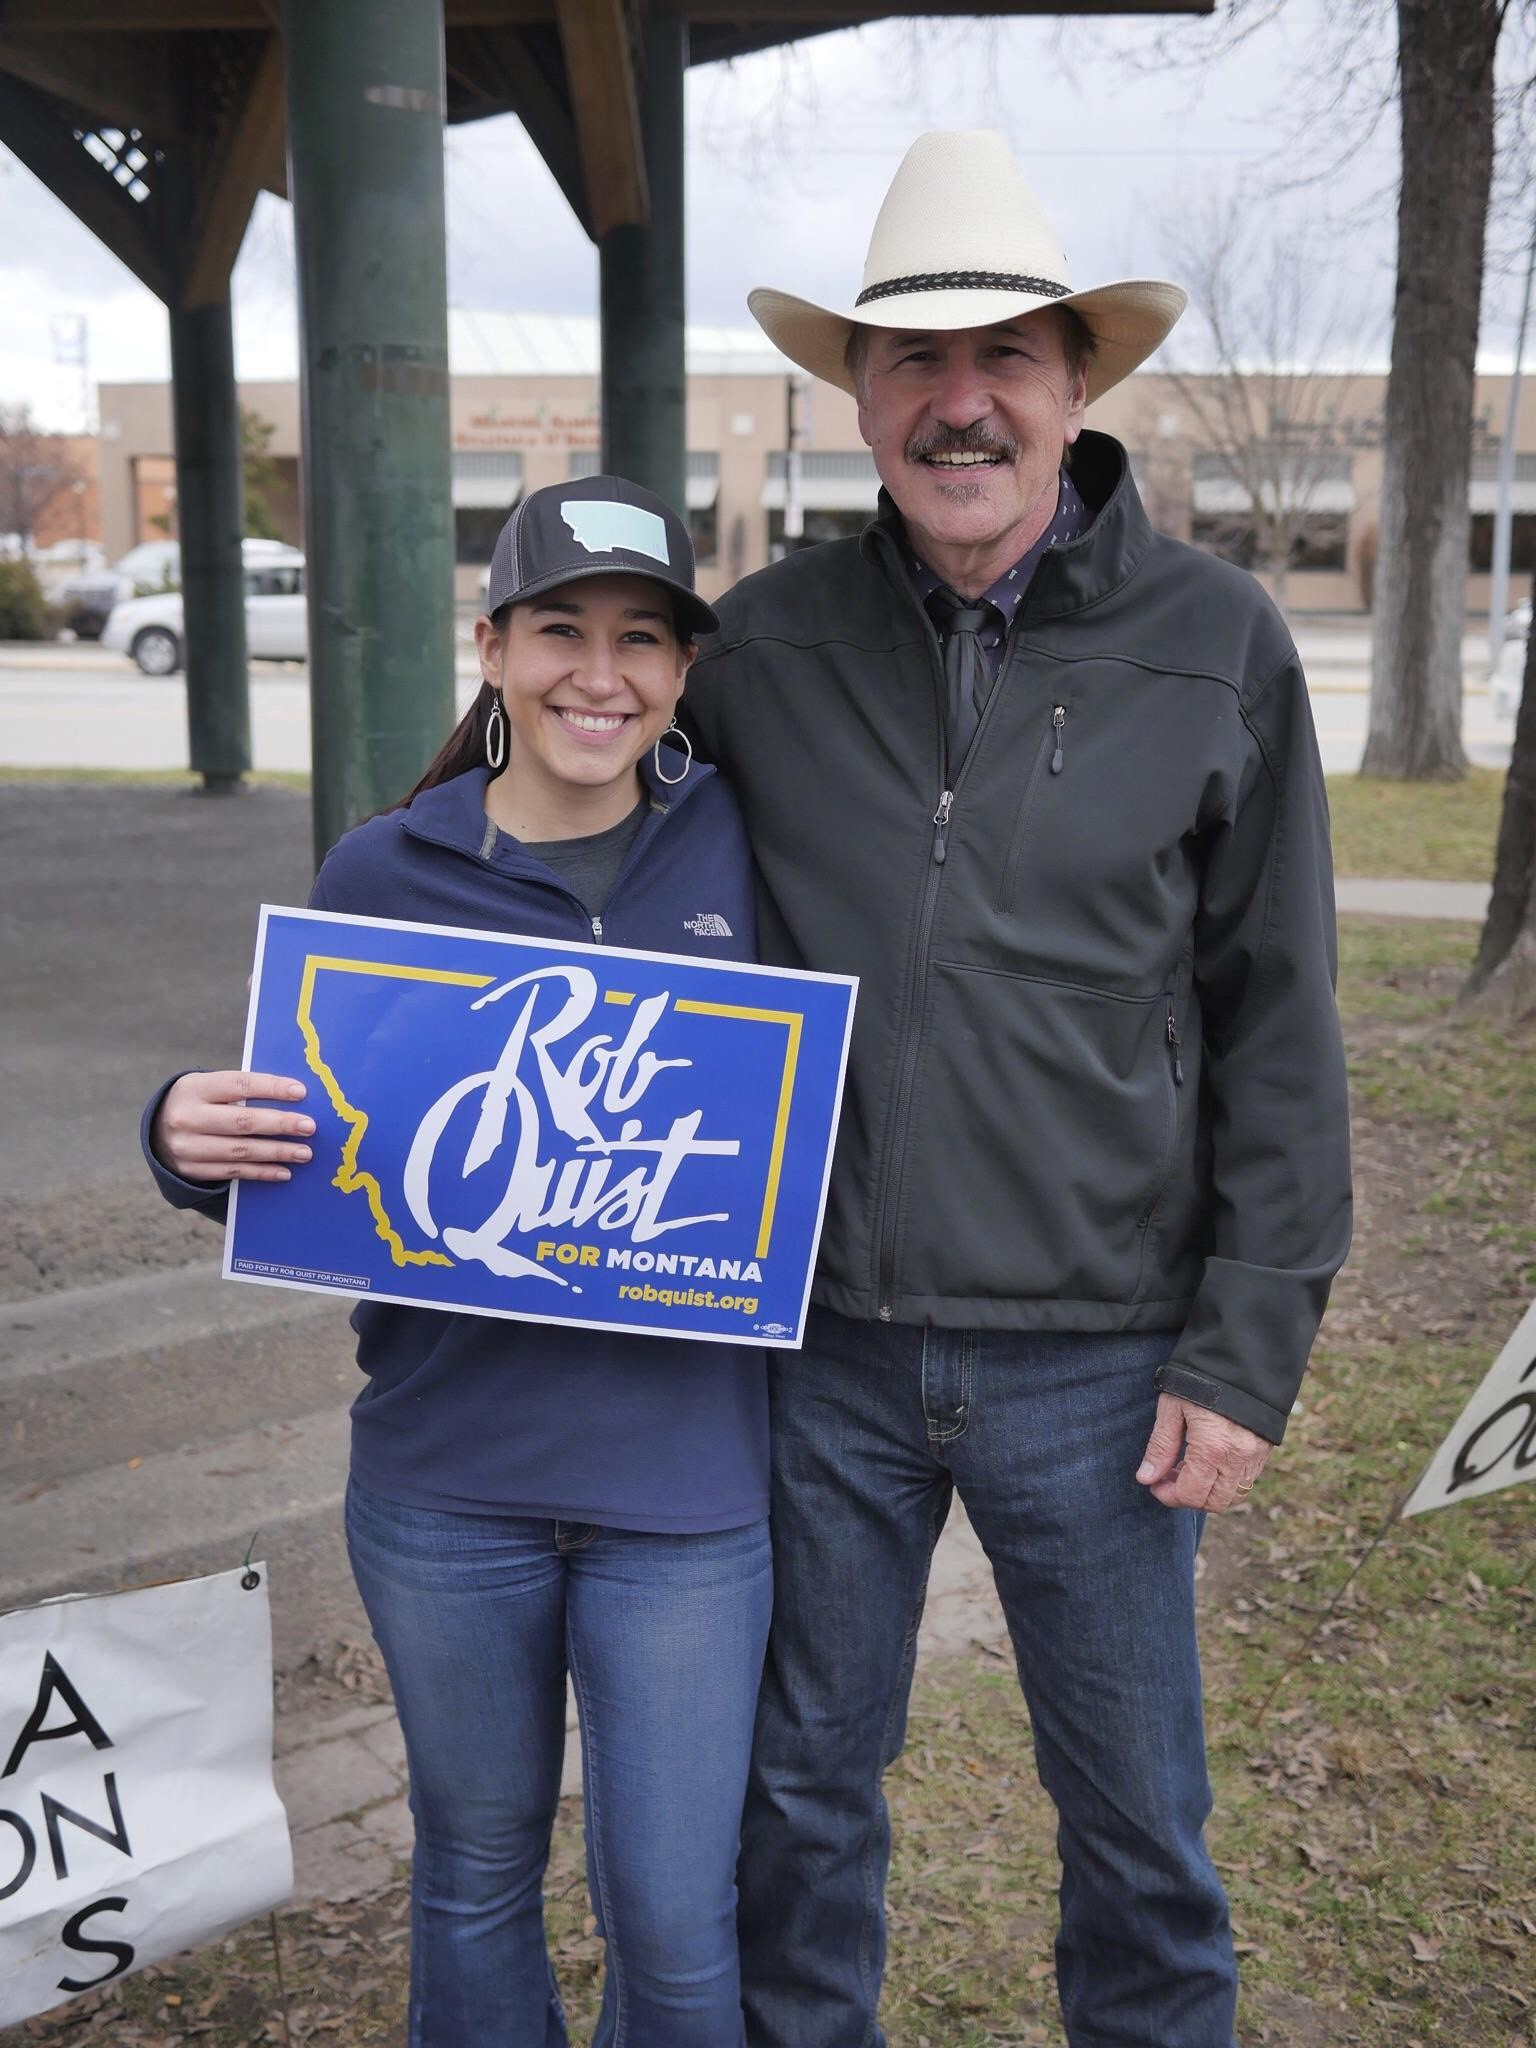 Rob Quist for U.S. House